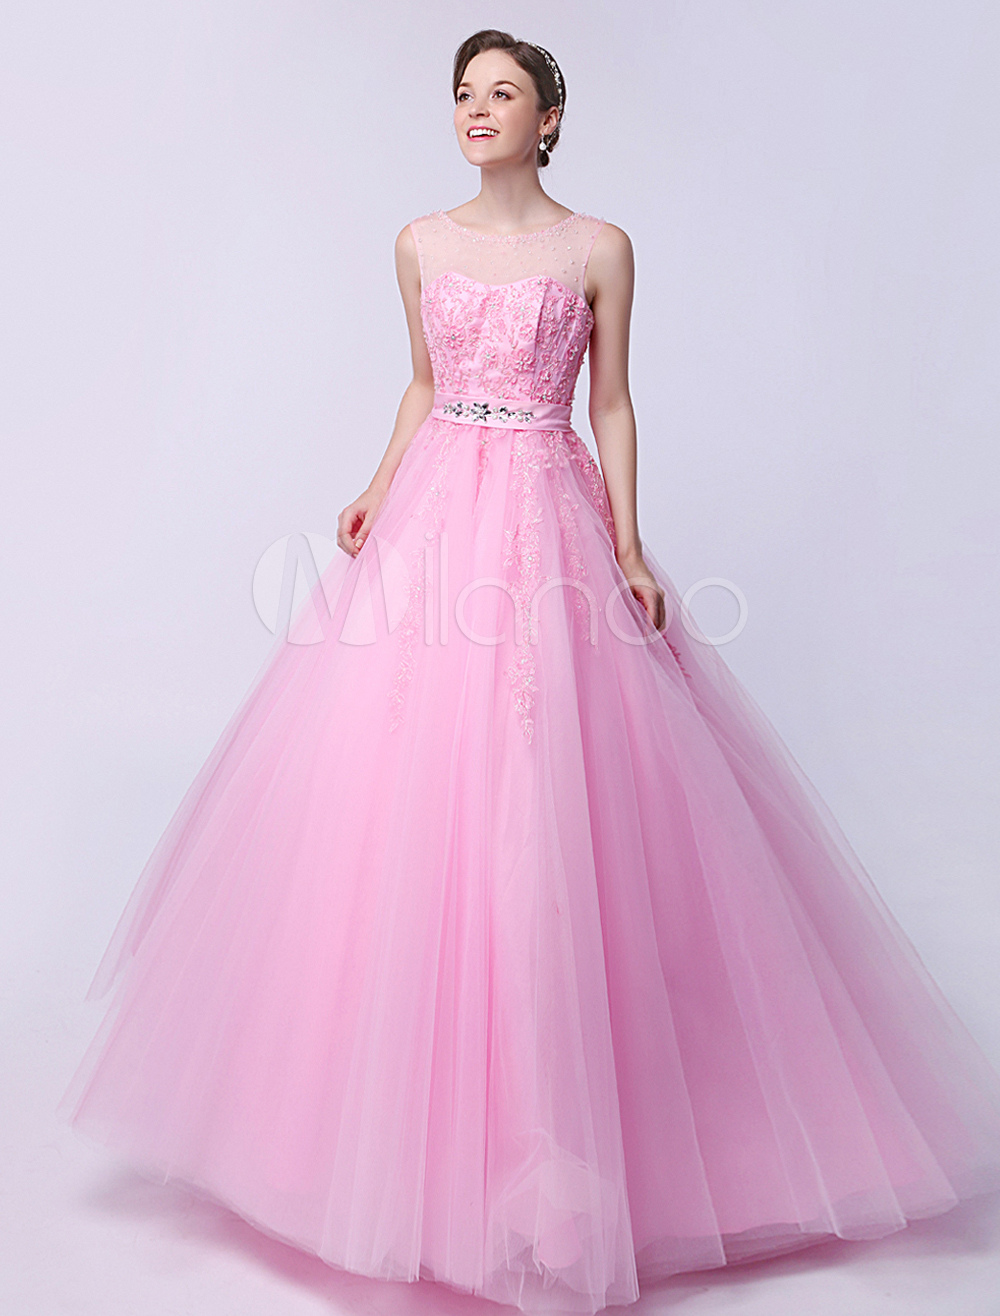 Pink Ball Gown Jewel Neck Floor-Length Quinceanera Dress with